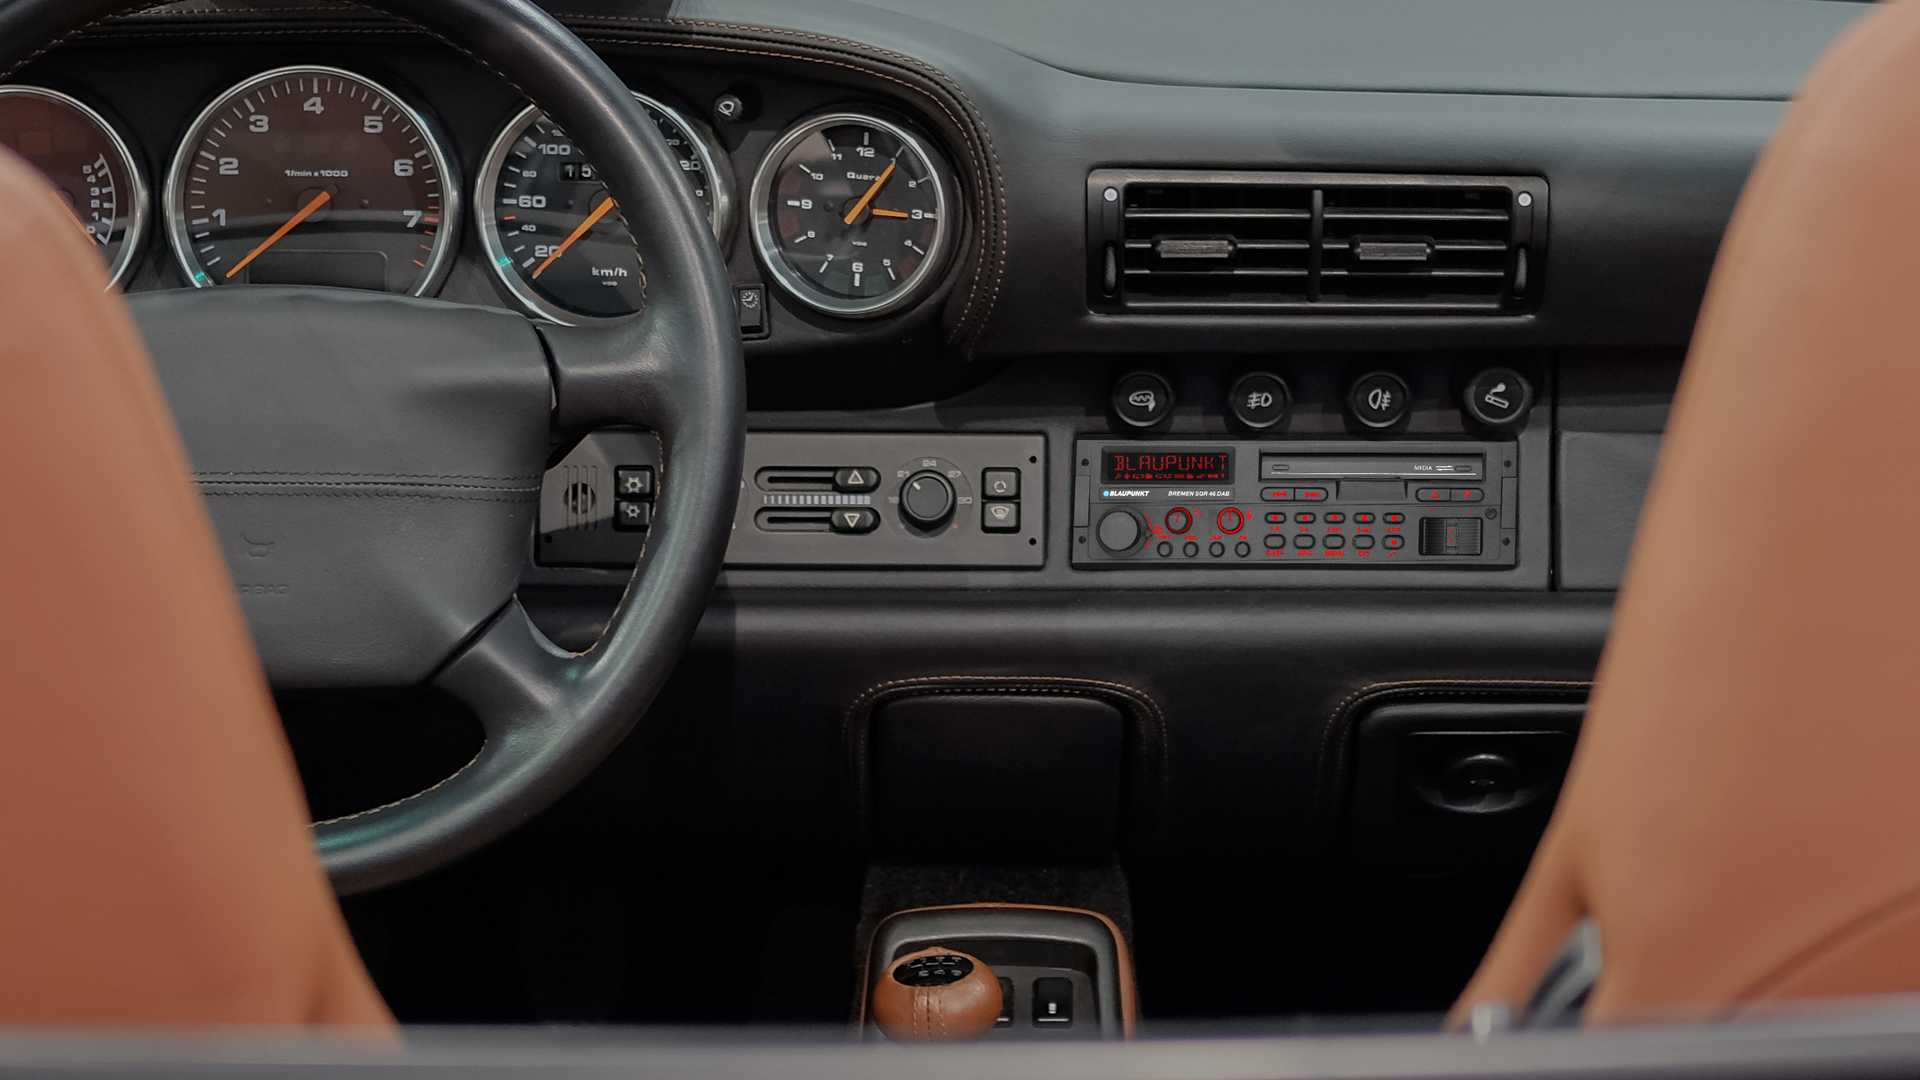 Blaupunkt Goes Retro With Modern Car Stereo Styled As '80's